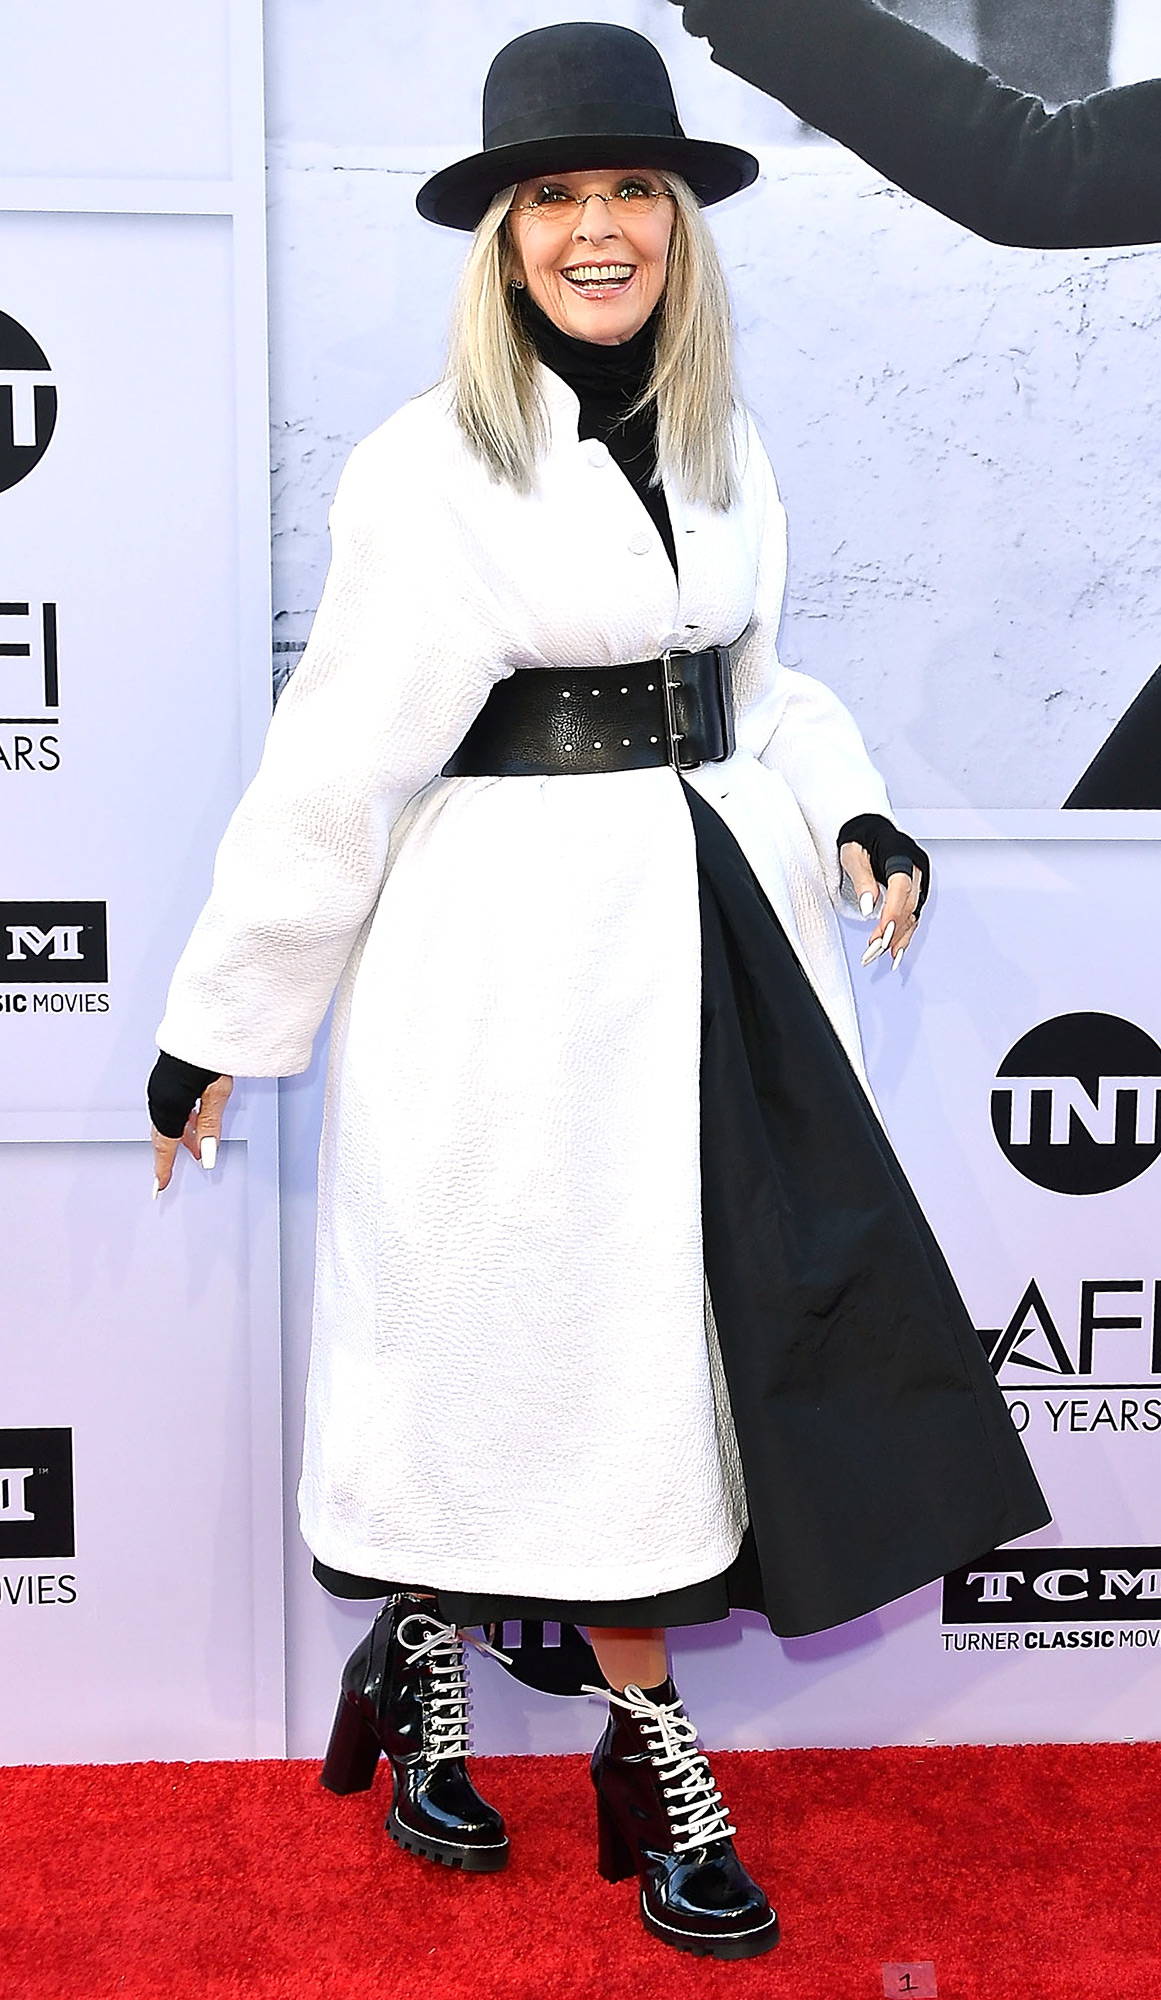 AFI Life Achievement Award Gala Tribute To Diane Keaton - Arrivals